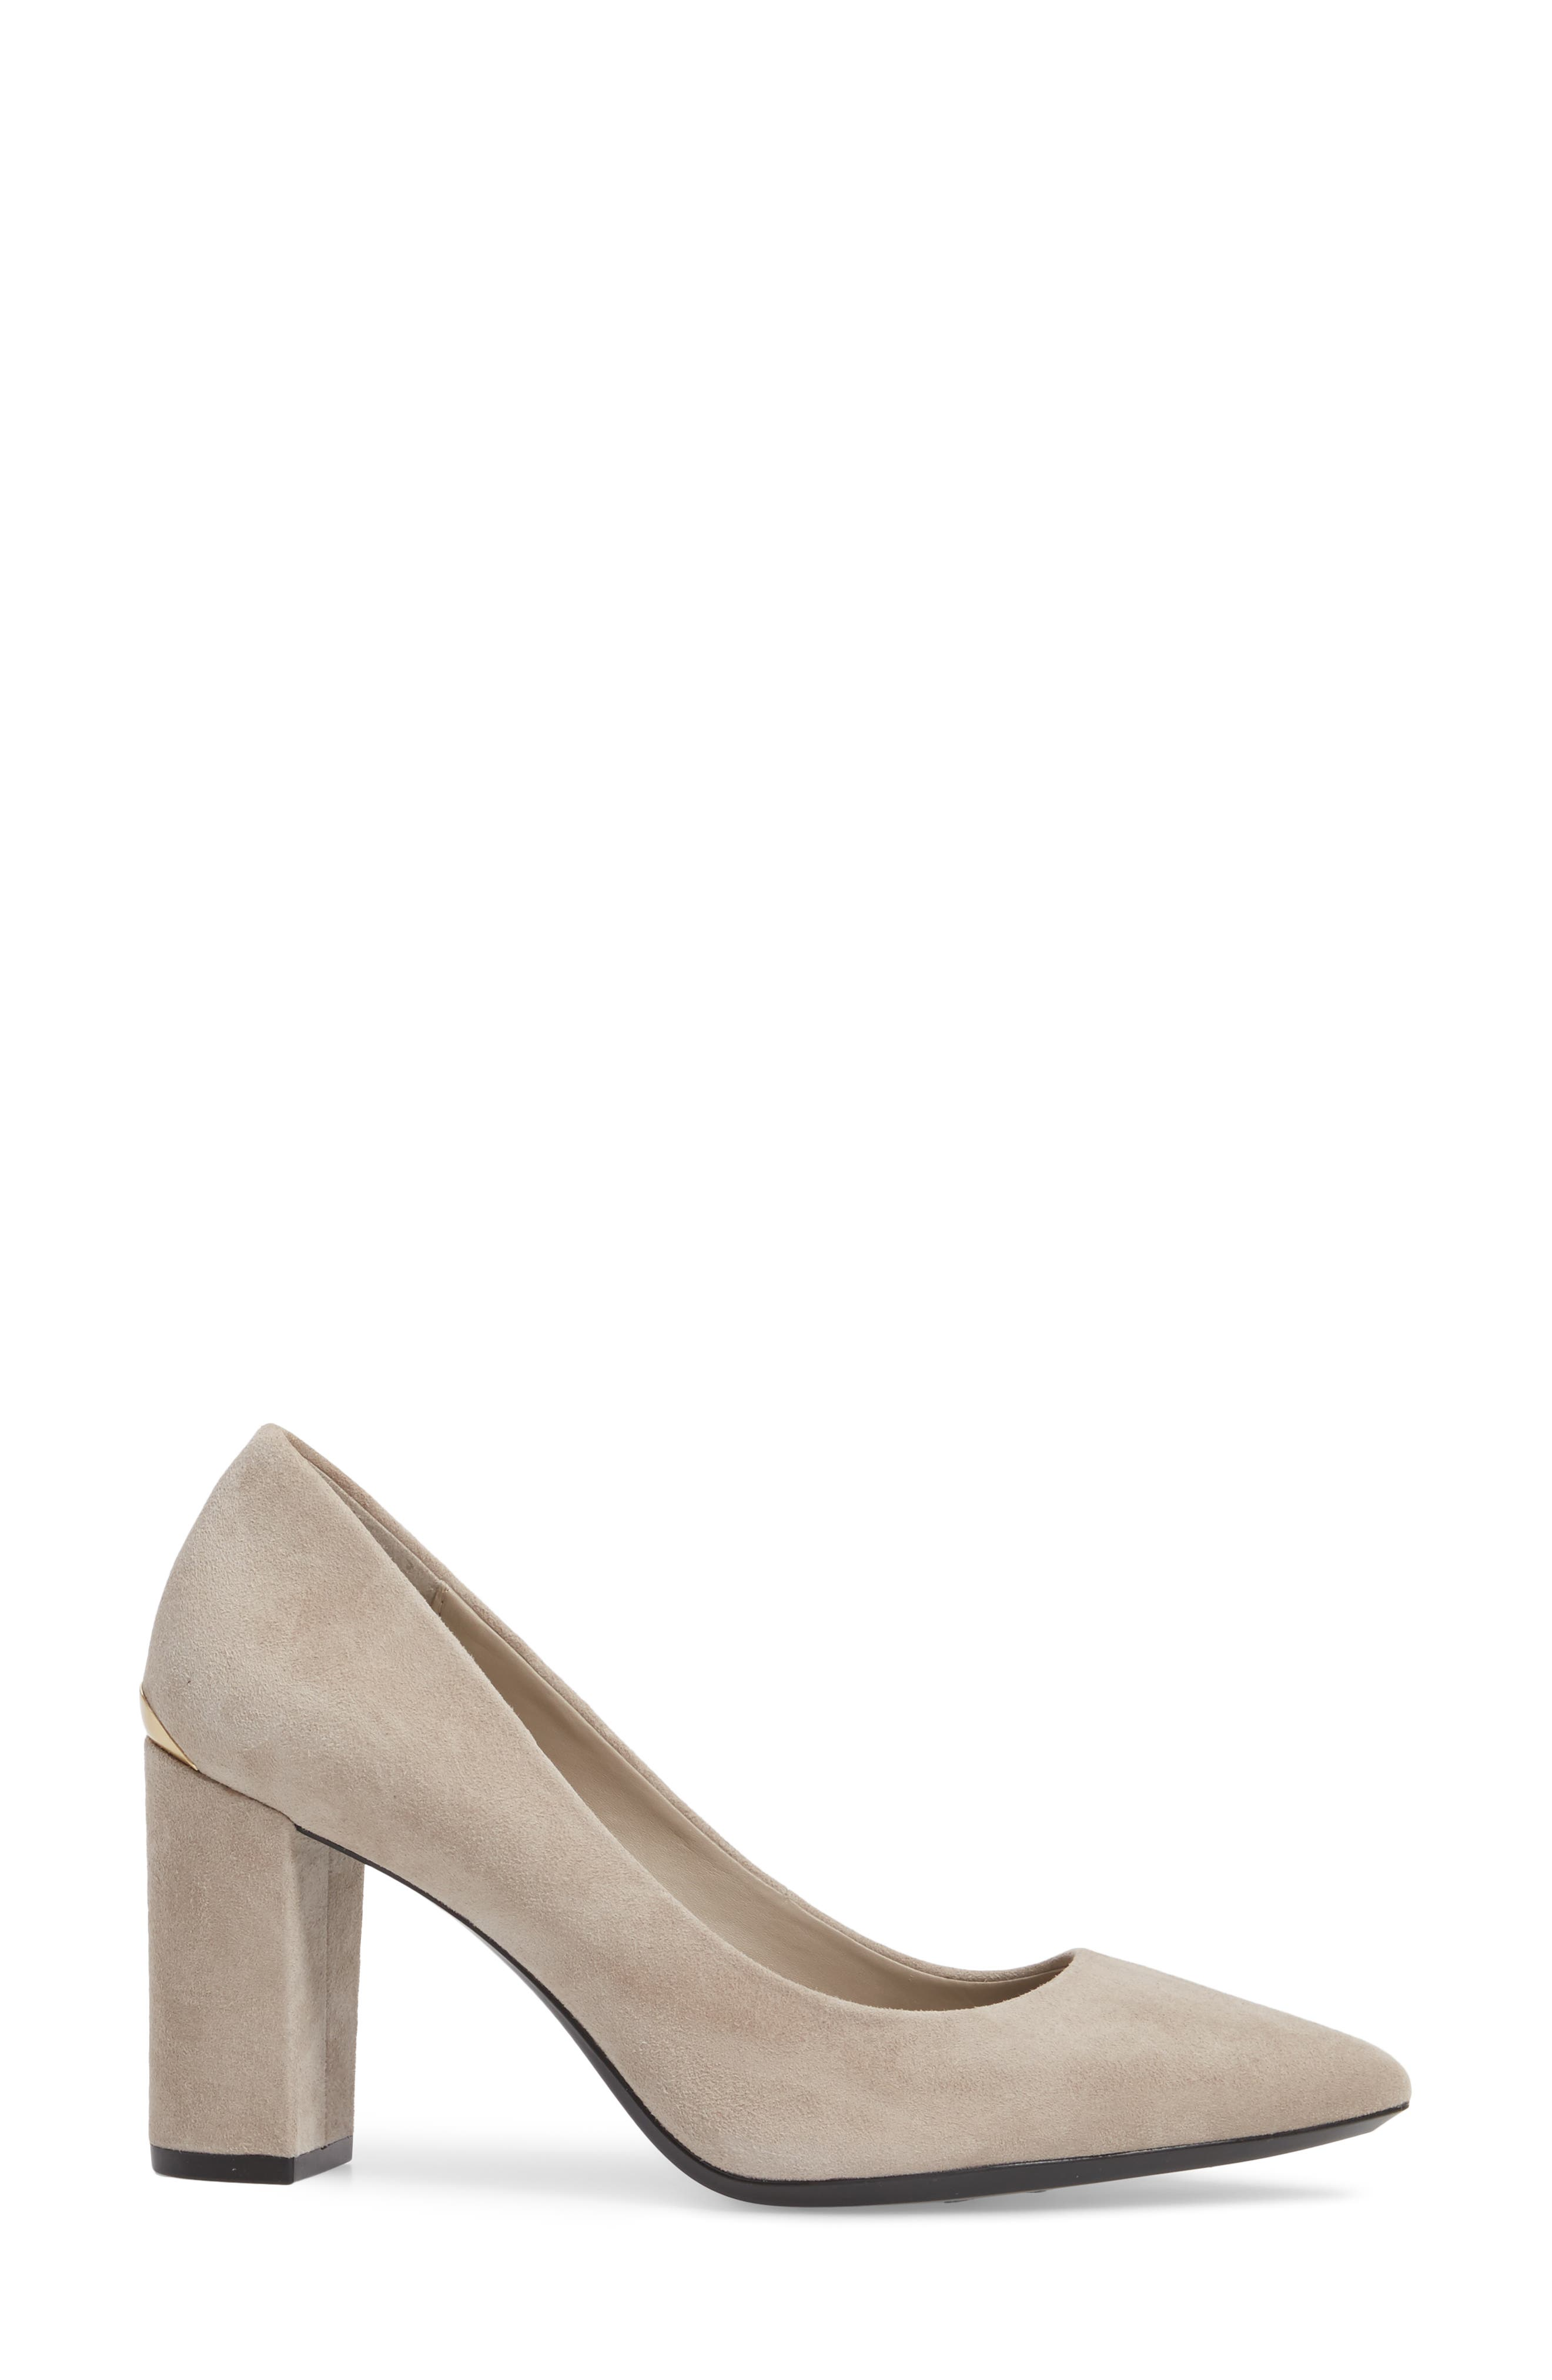 Eviti Pointy Toe Pump,                             Alternate thumbnail 3, color,                             Clay Suede